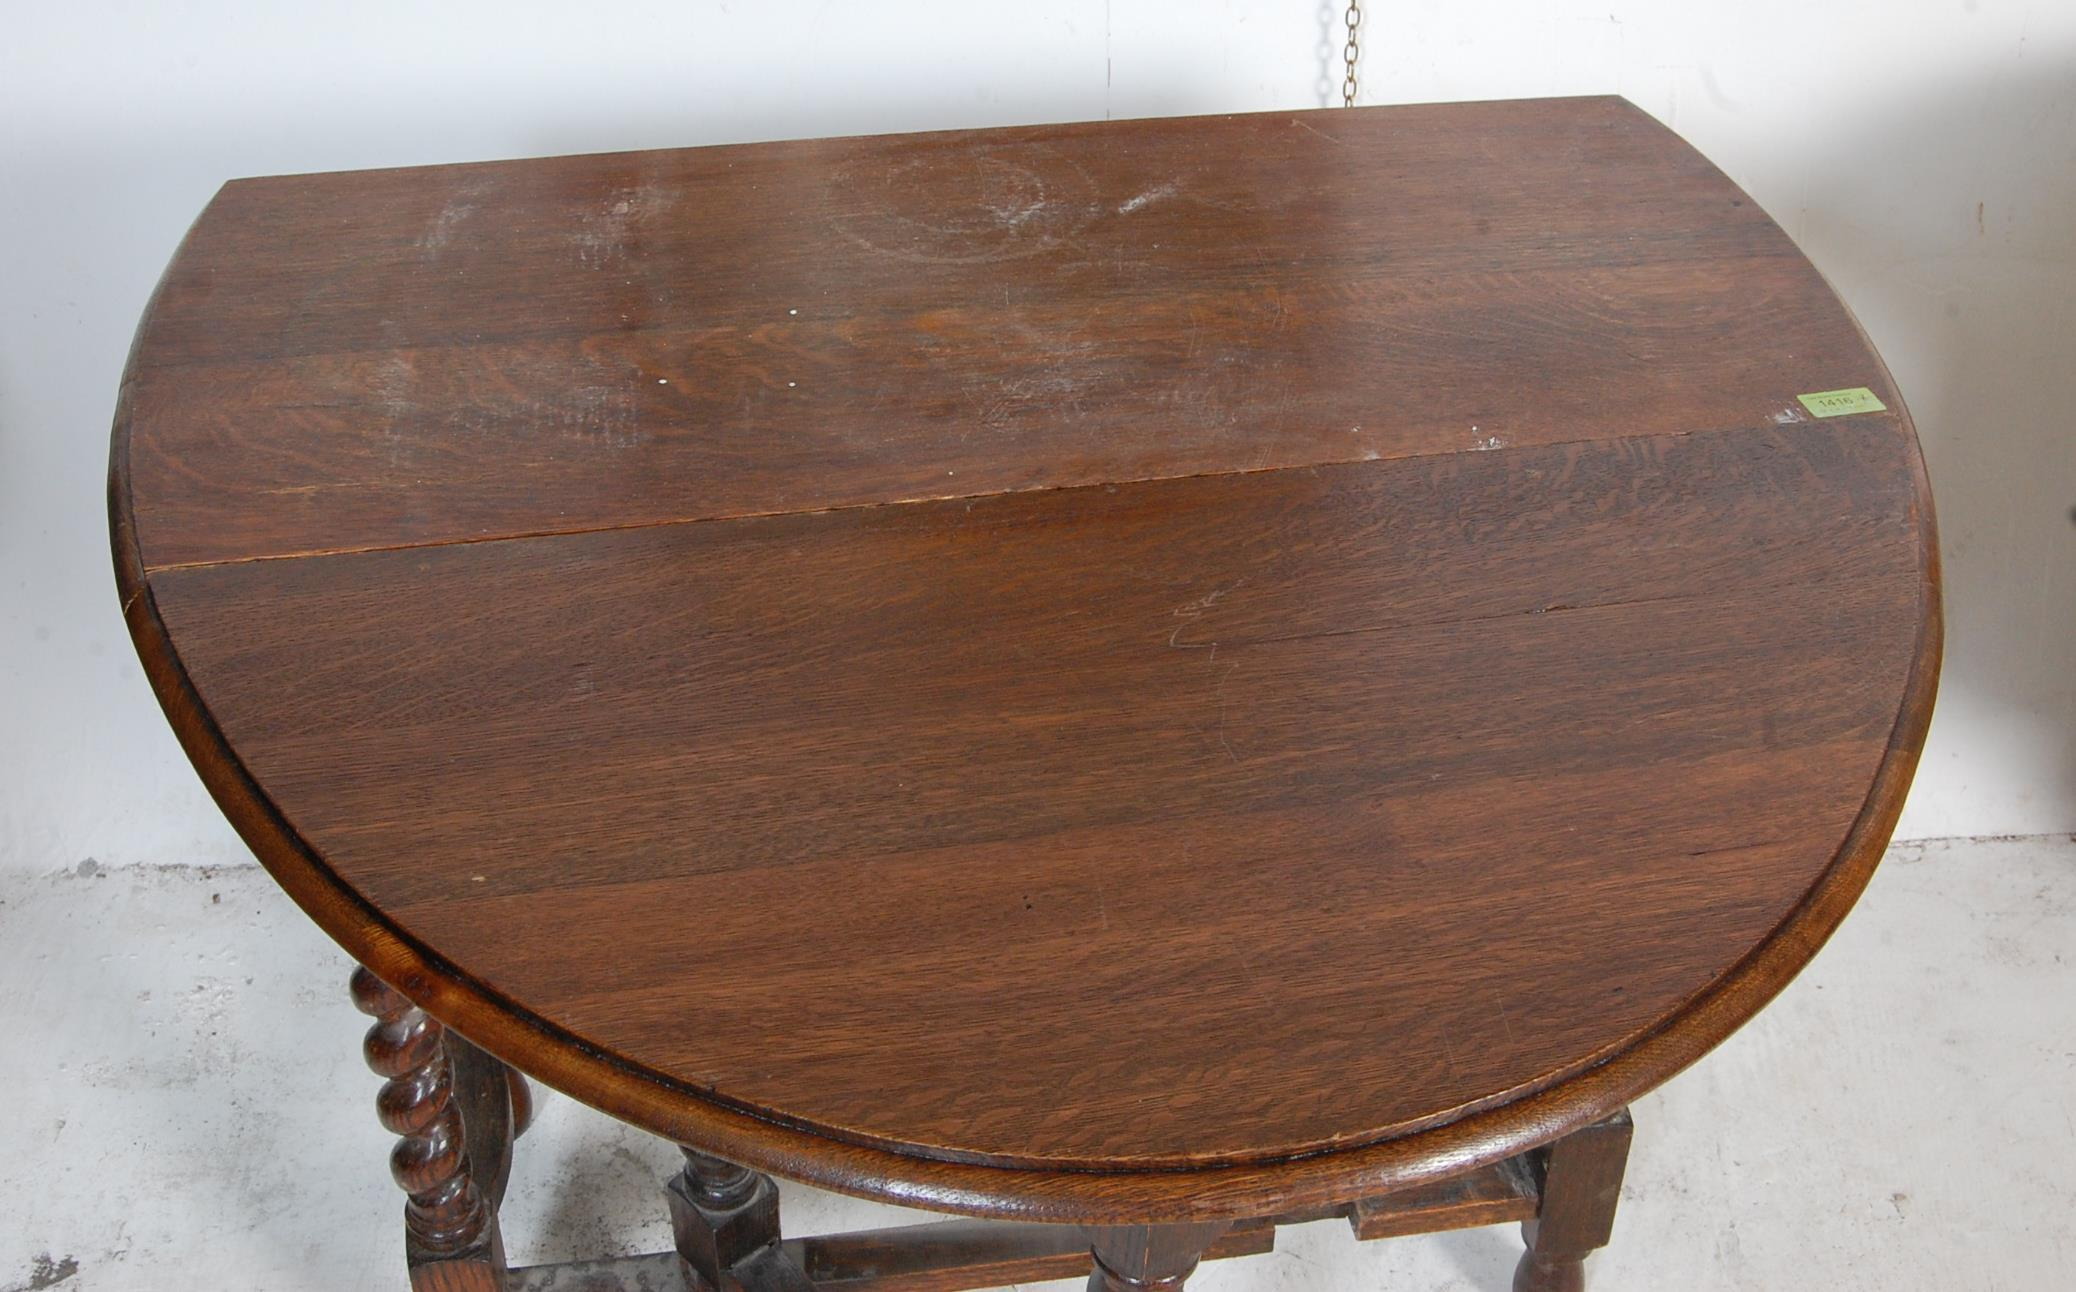 1940'S OAK DROP LEAF DINING TABLE AND OVAL WALL MIRROR - Image 6 of 6